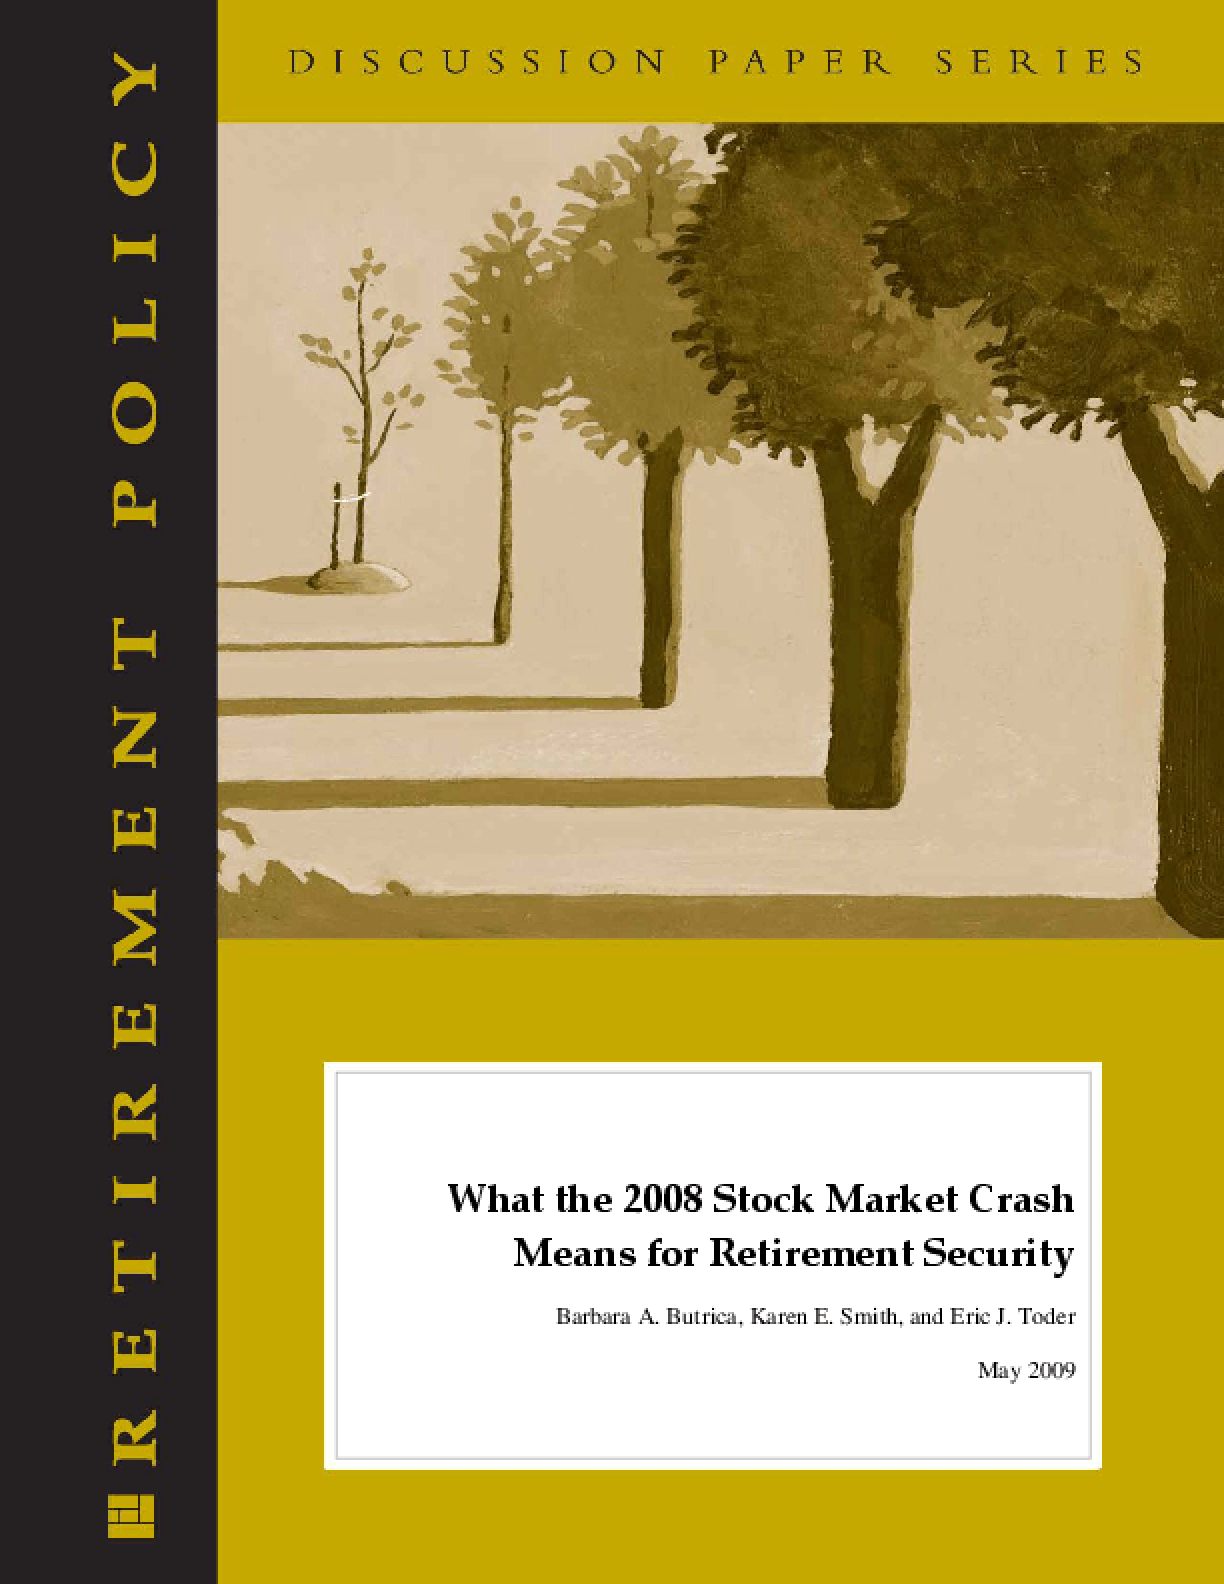 What the 2008 Stock Market Crash Means for Retirement Security